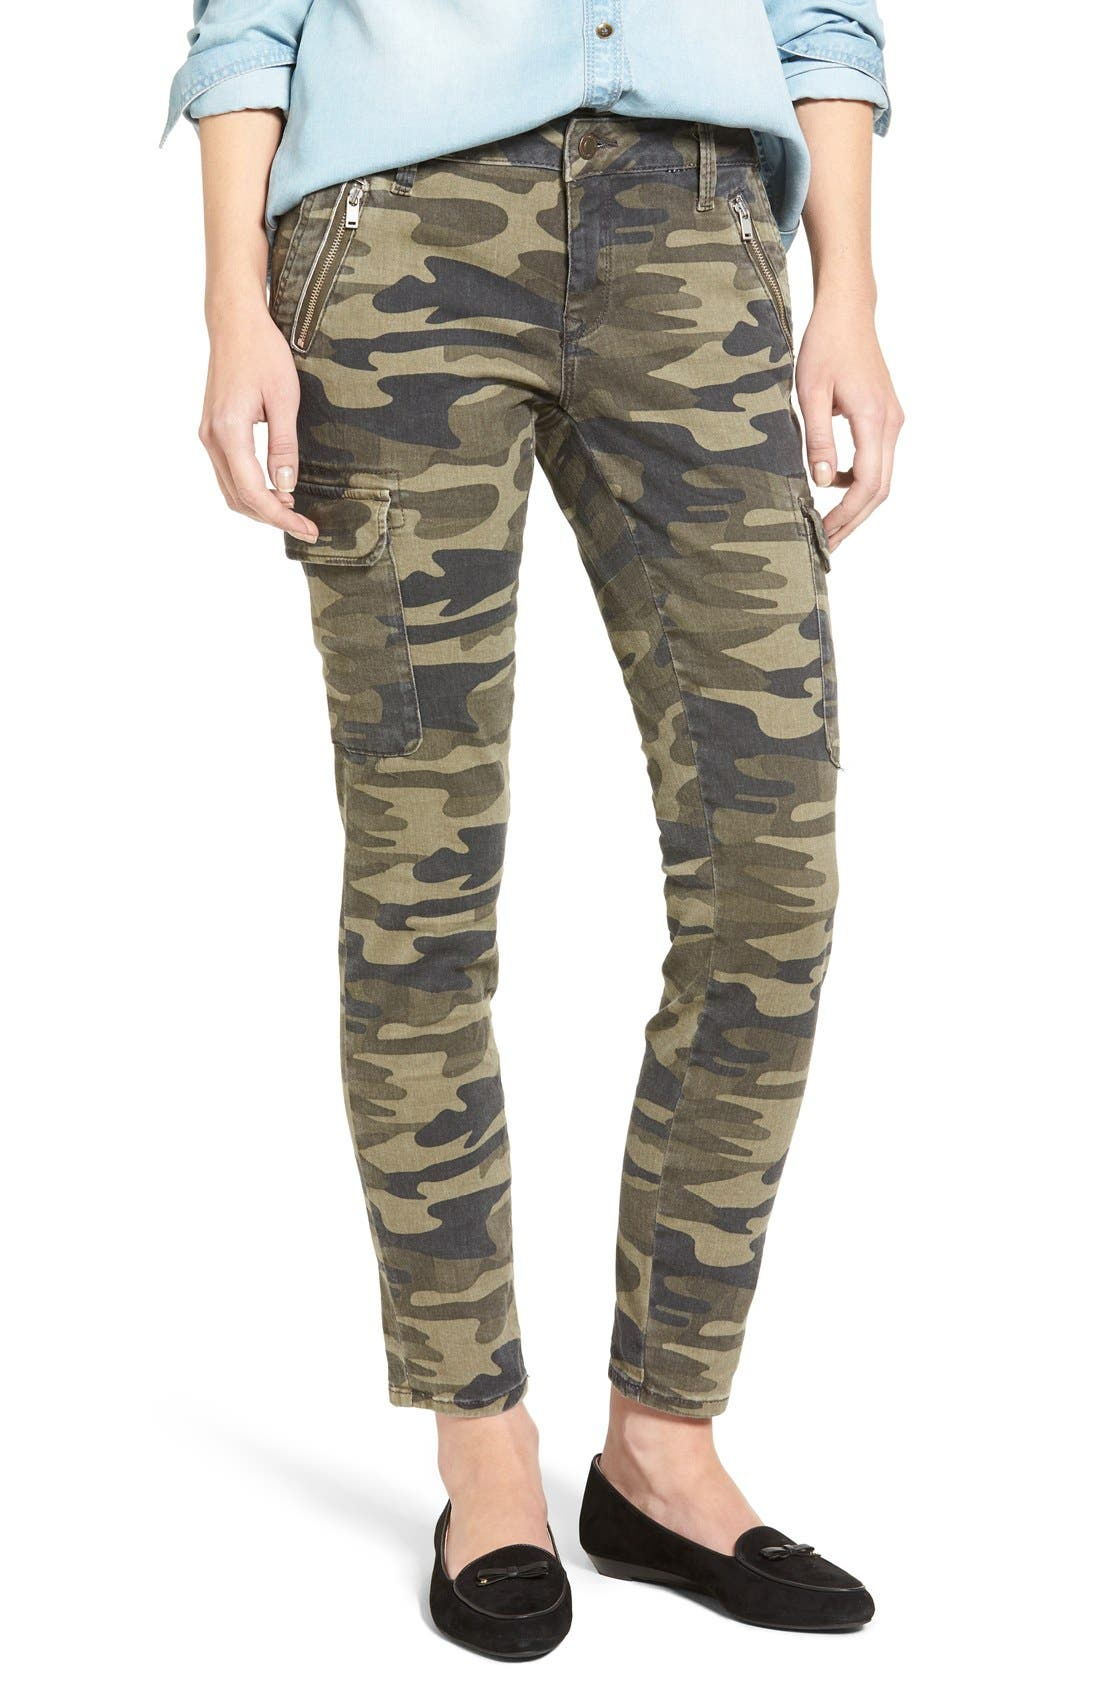 Juliette Camo Print Military Cargo Pants,                         Main,                         color, MILITARY CAMOUFLAGE